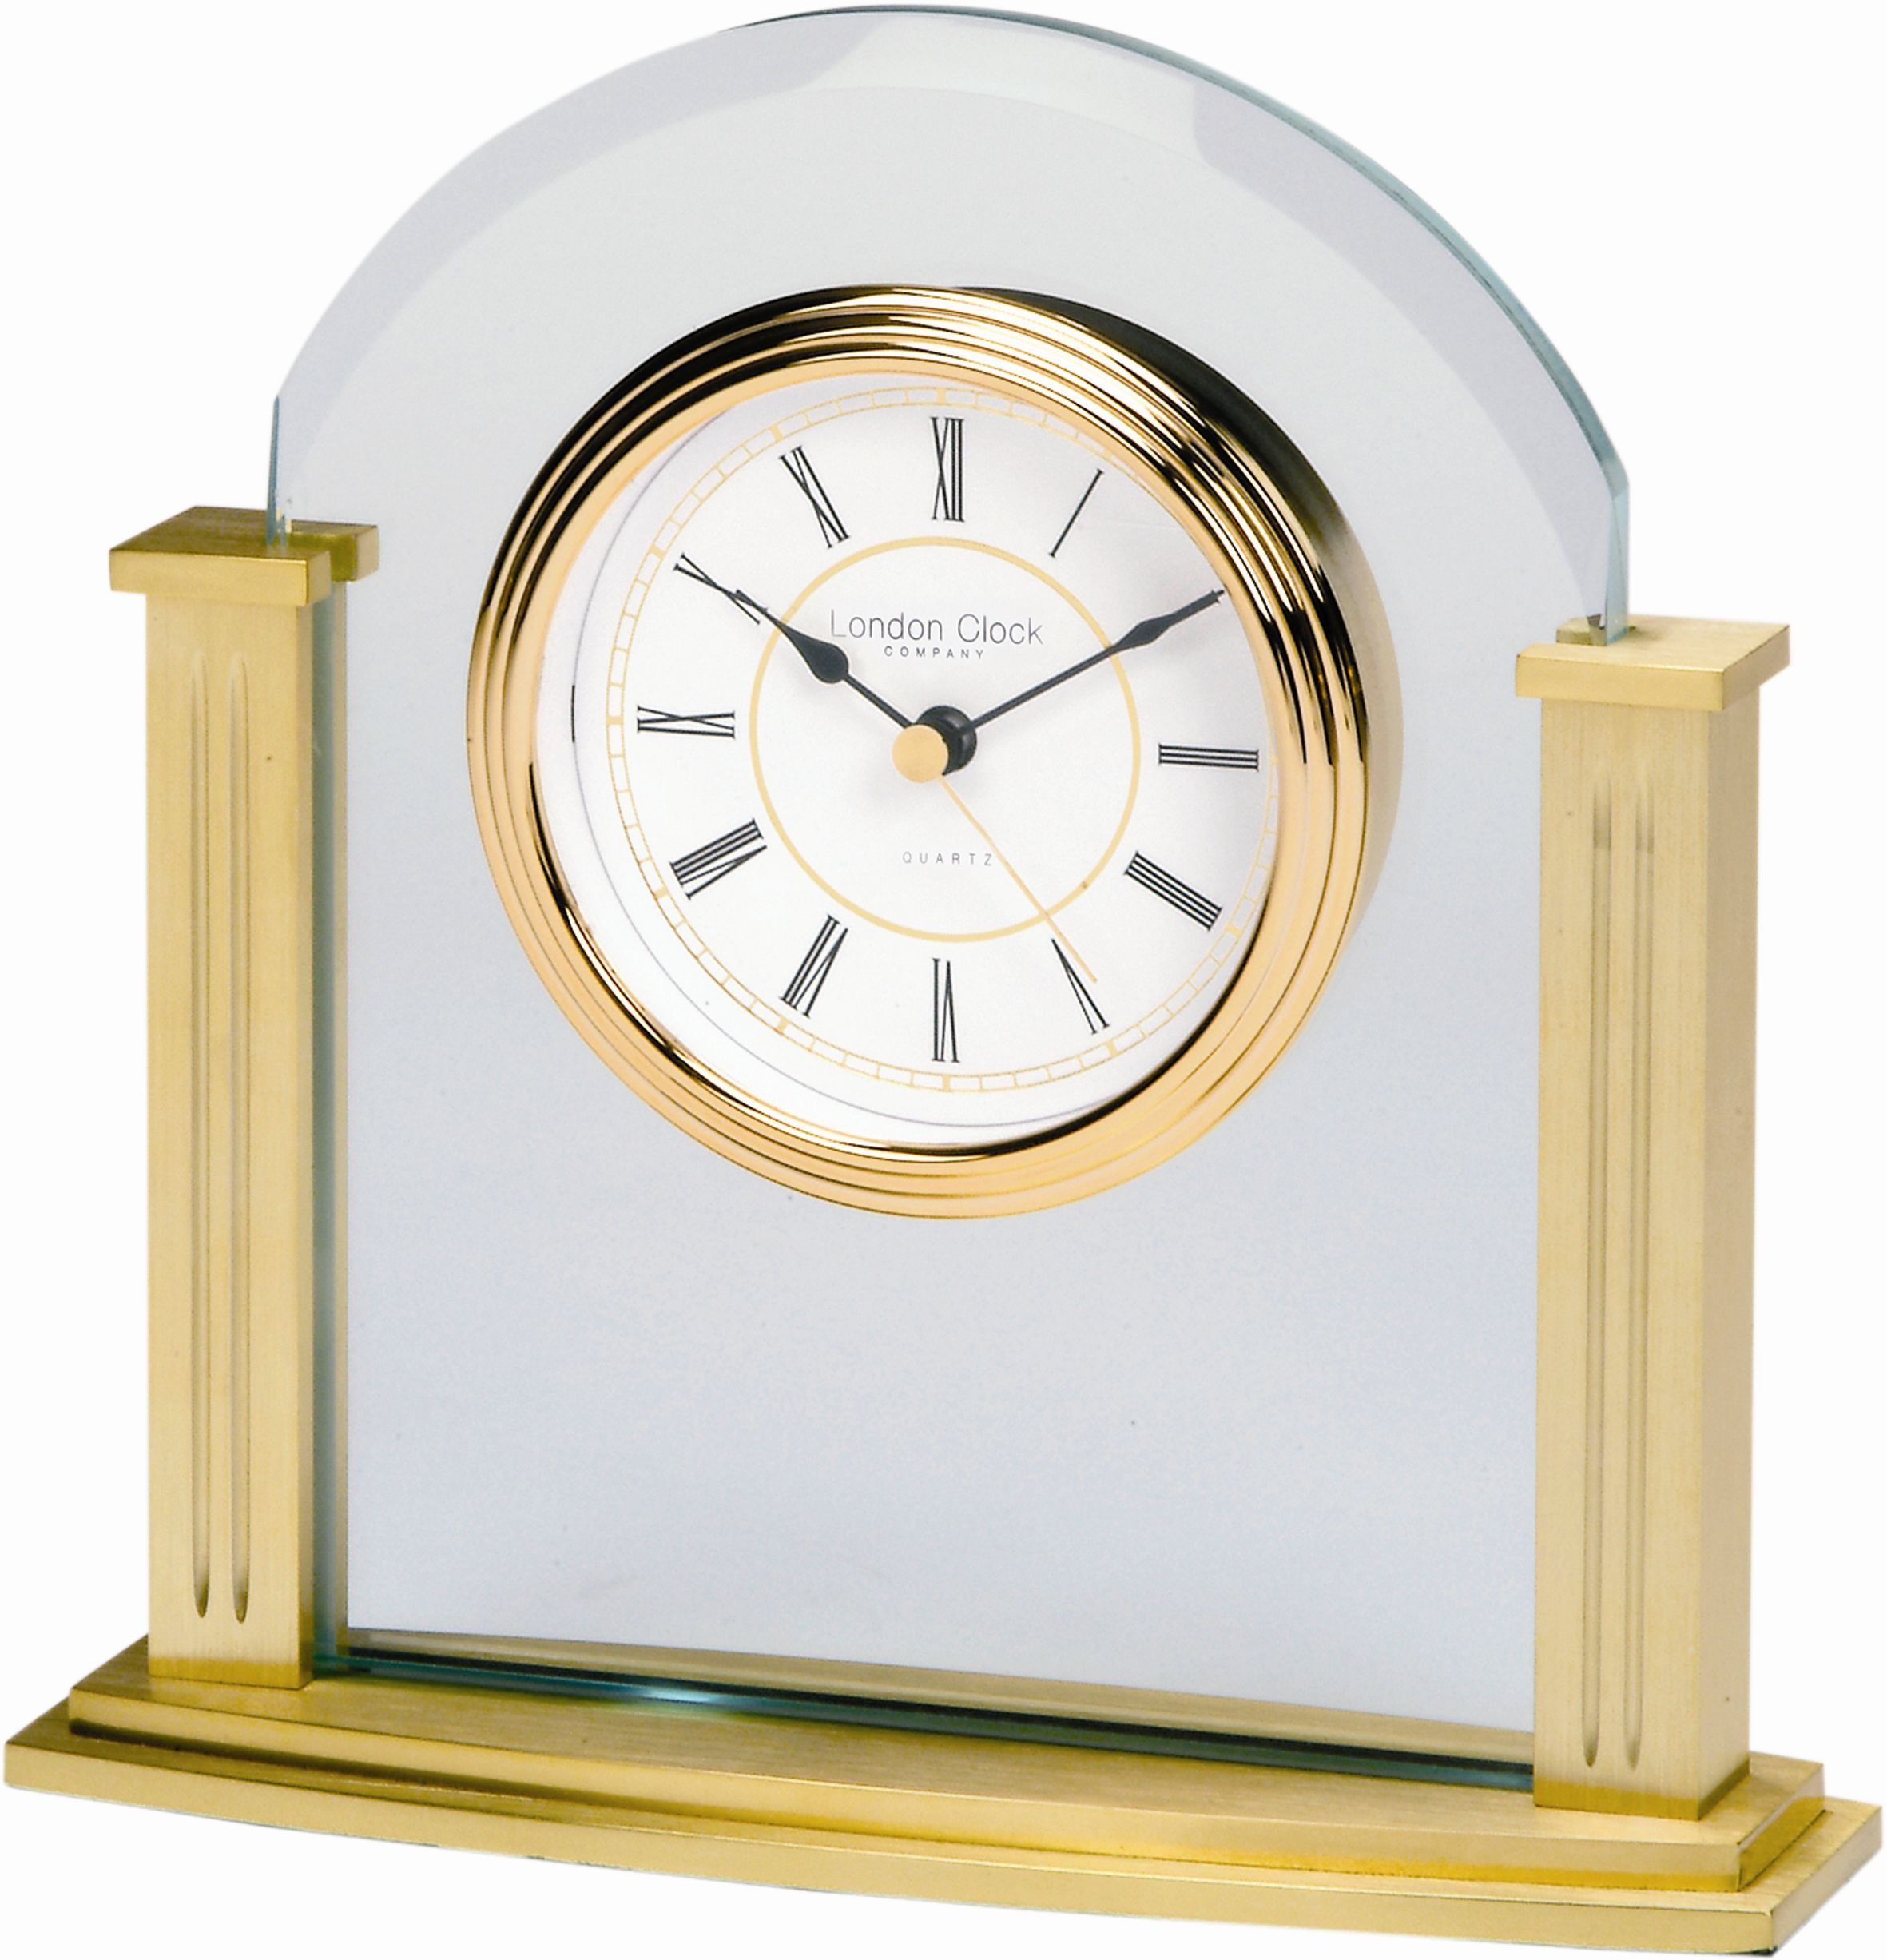 London Clock Traditional gold mantle clock